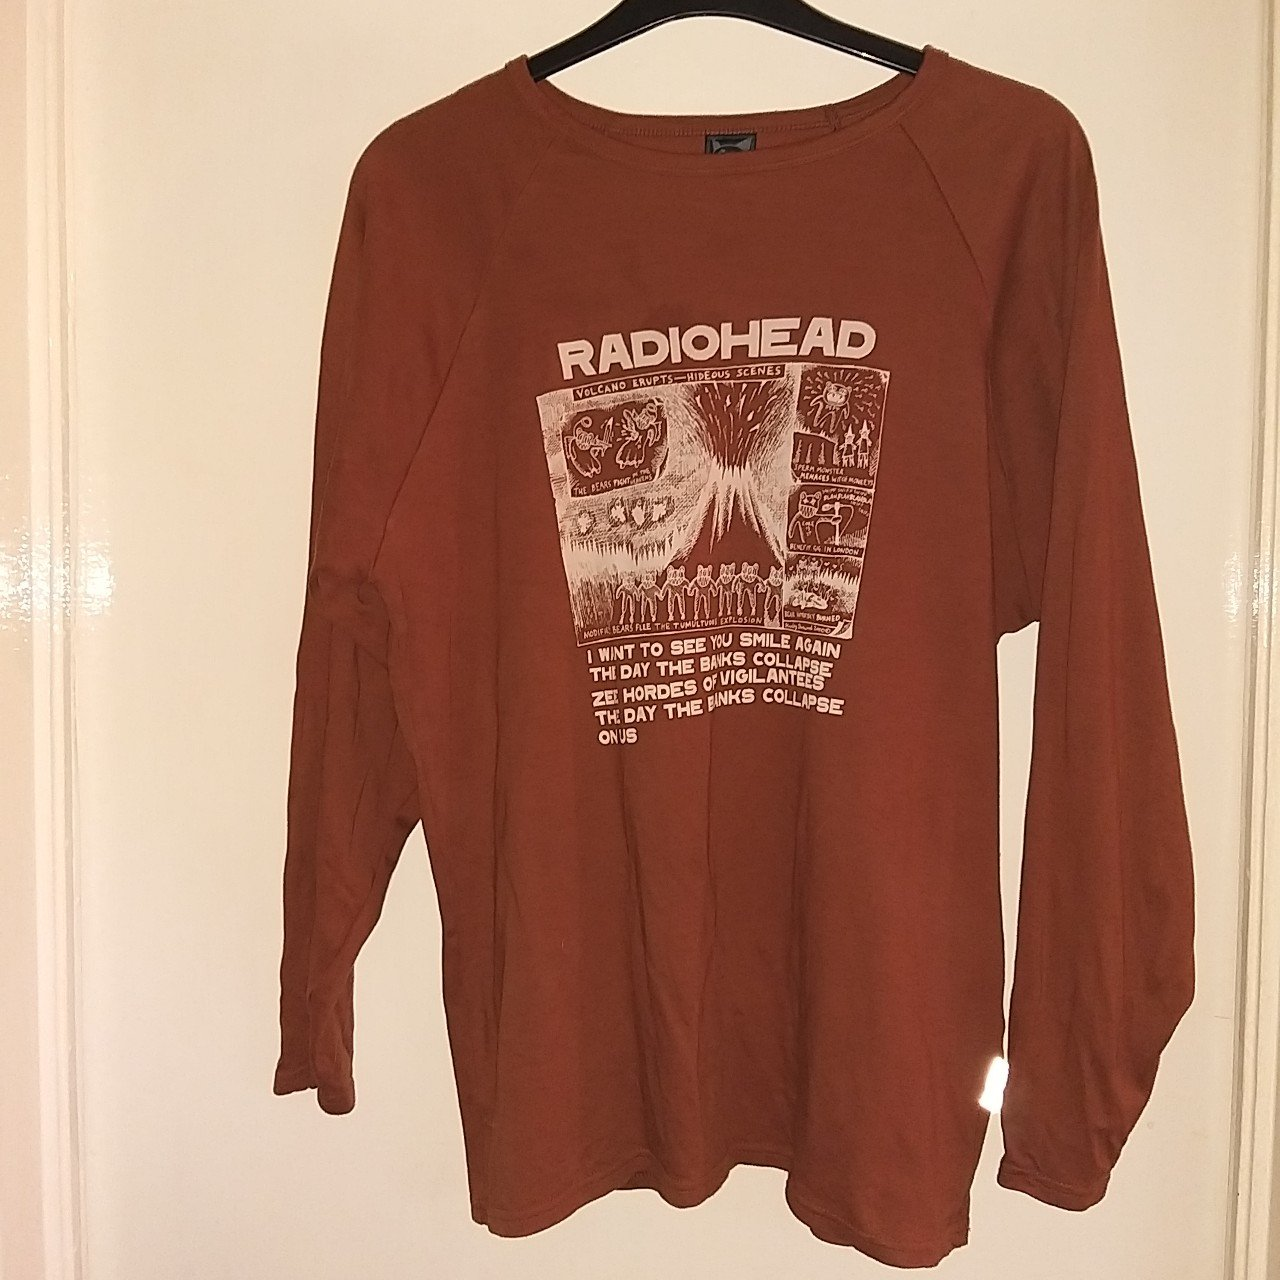 1adf6d361005 @comeasyouare1. 21 days ago. Liverpool, GB. Brown long sleeved radiohead t  shirt.